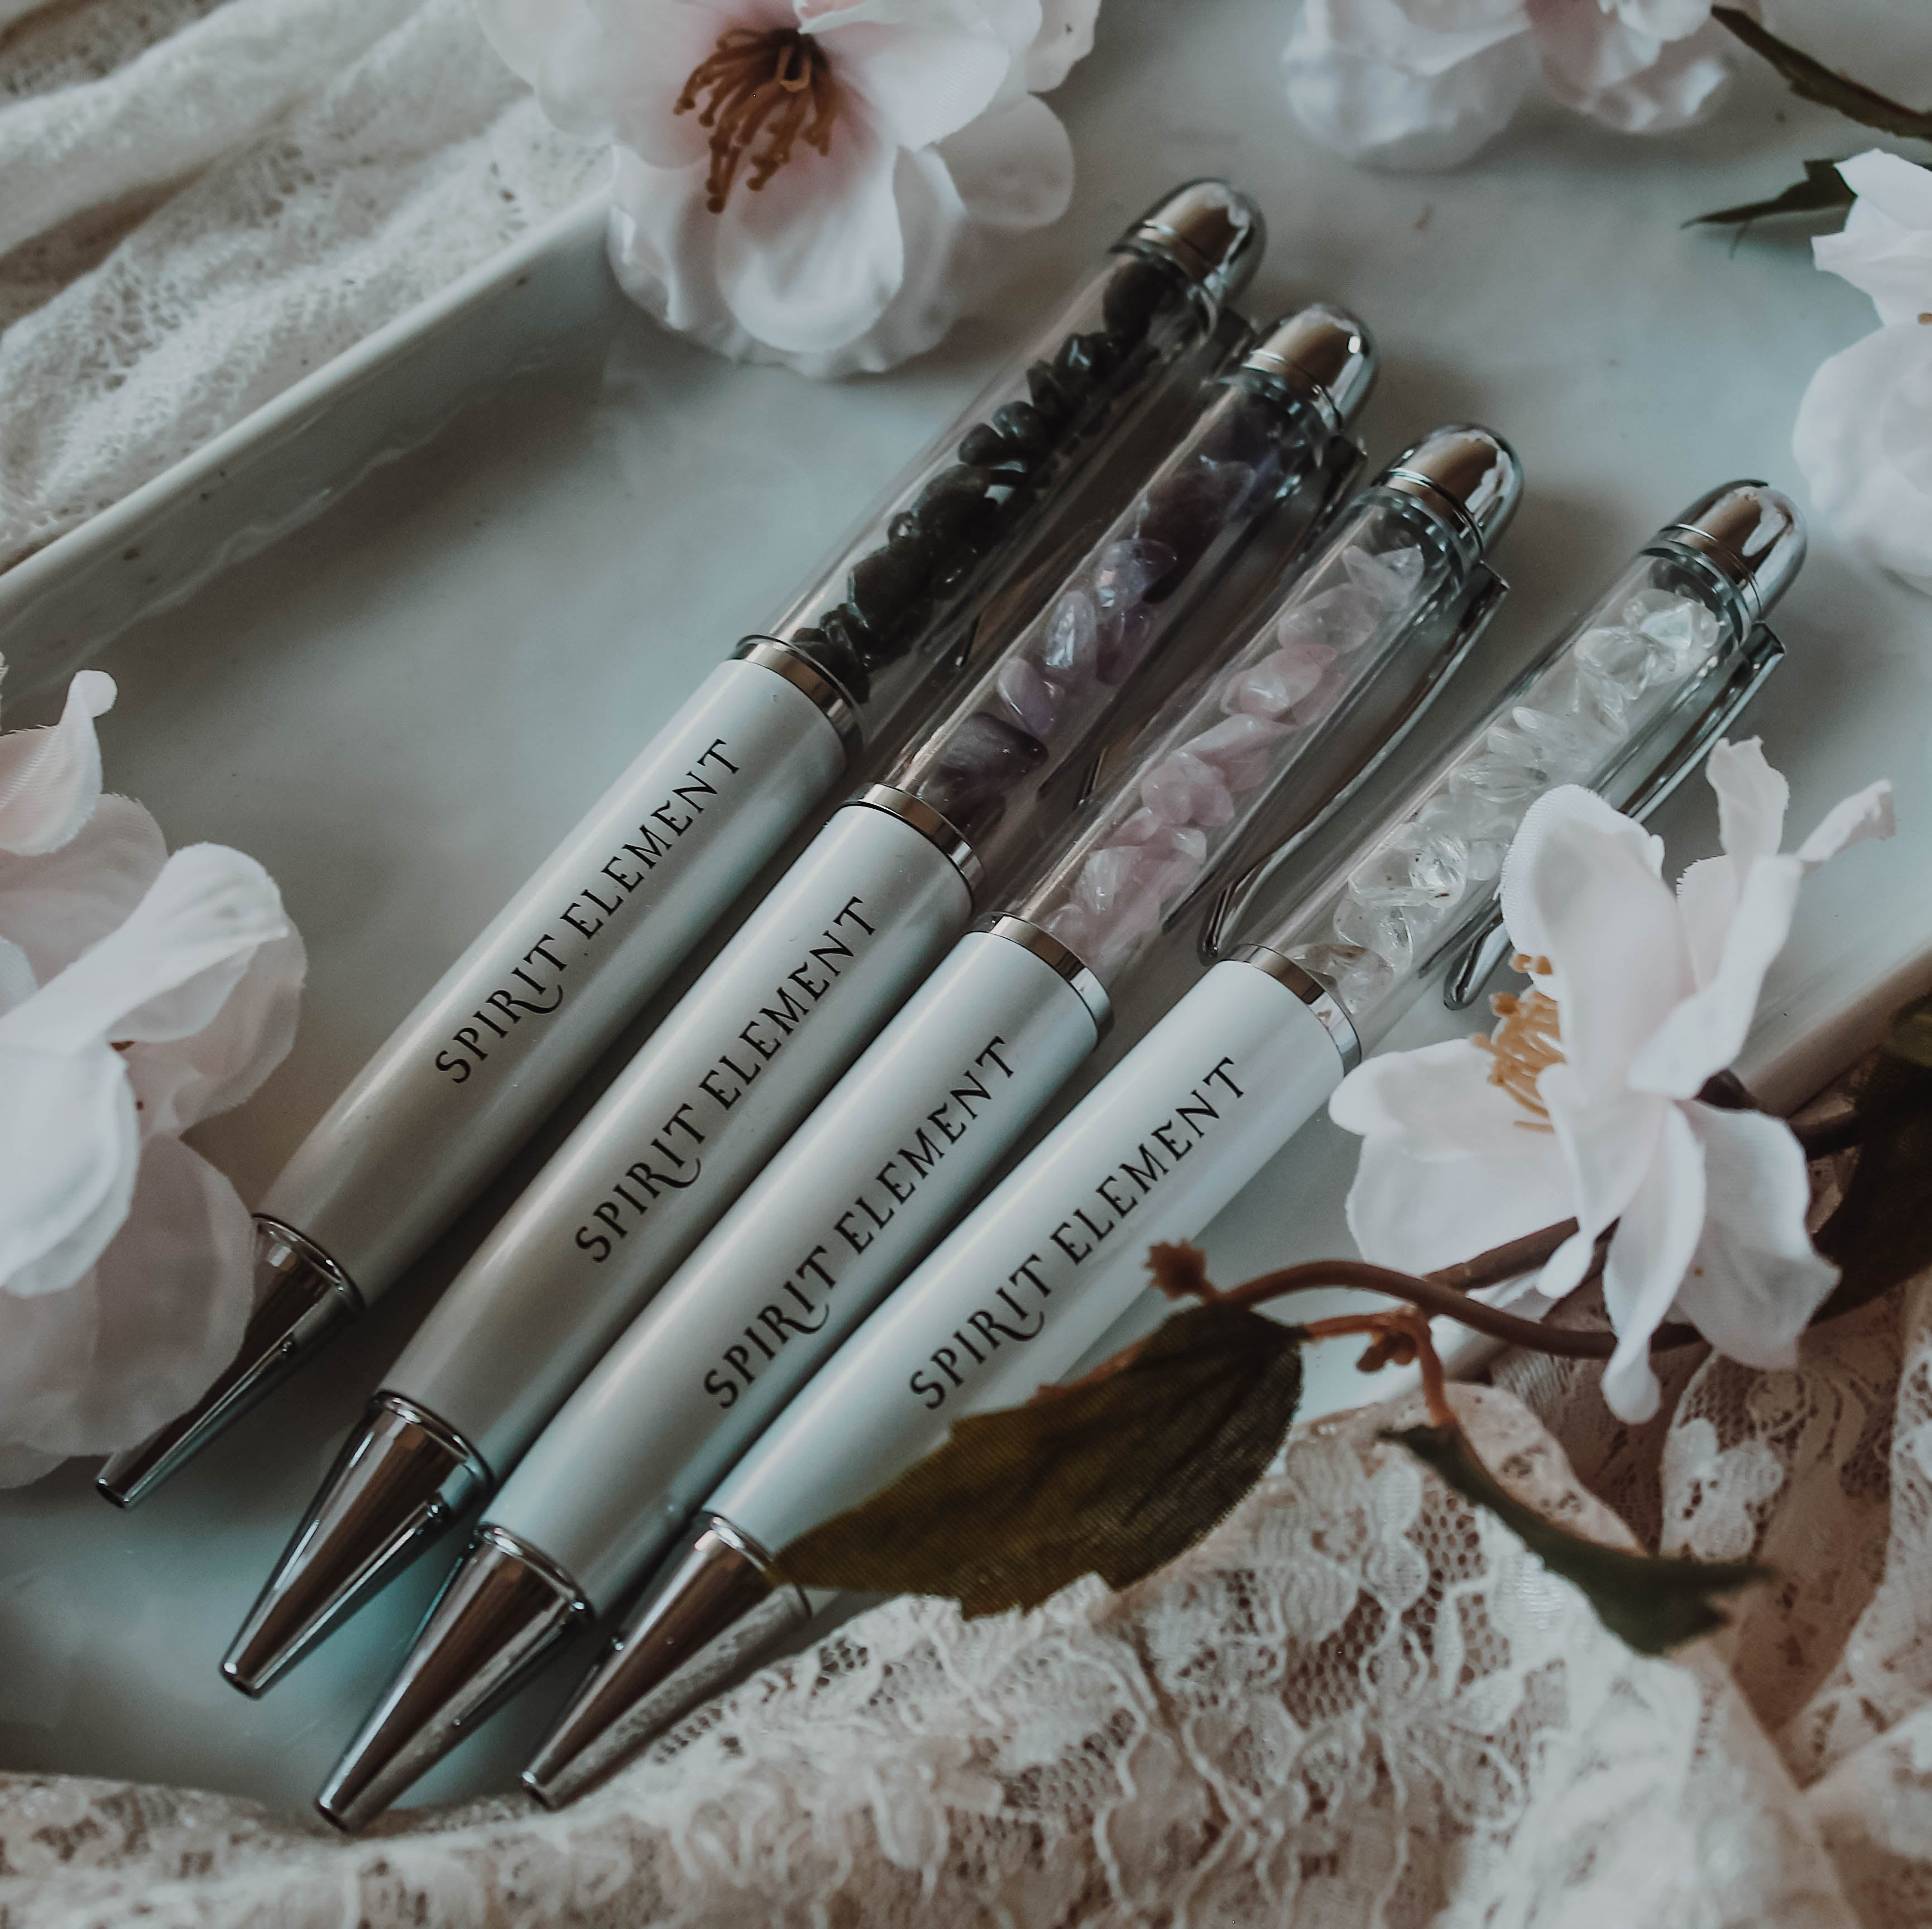 Crystal Intention Pens